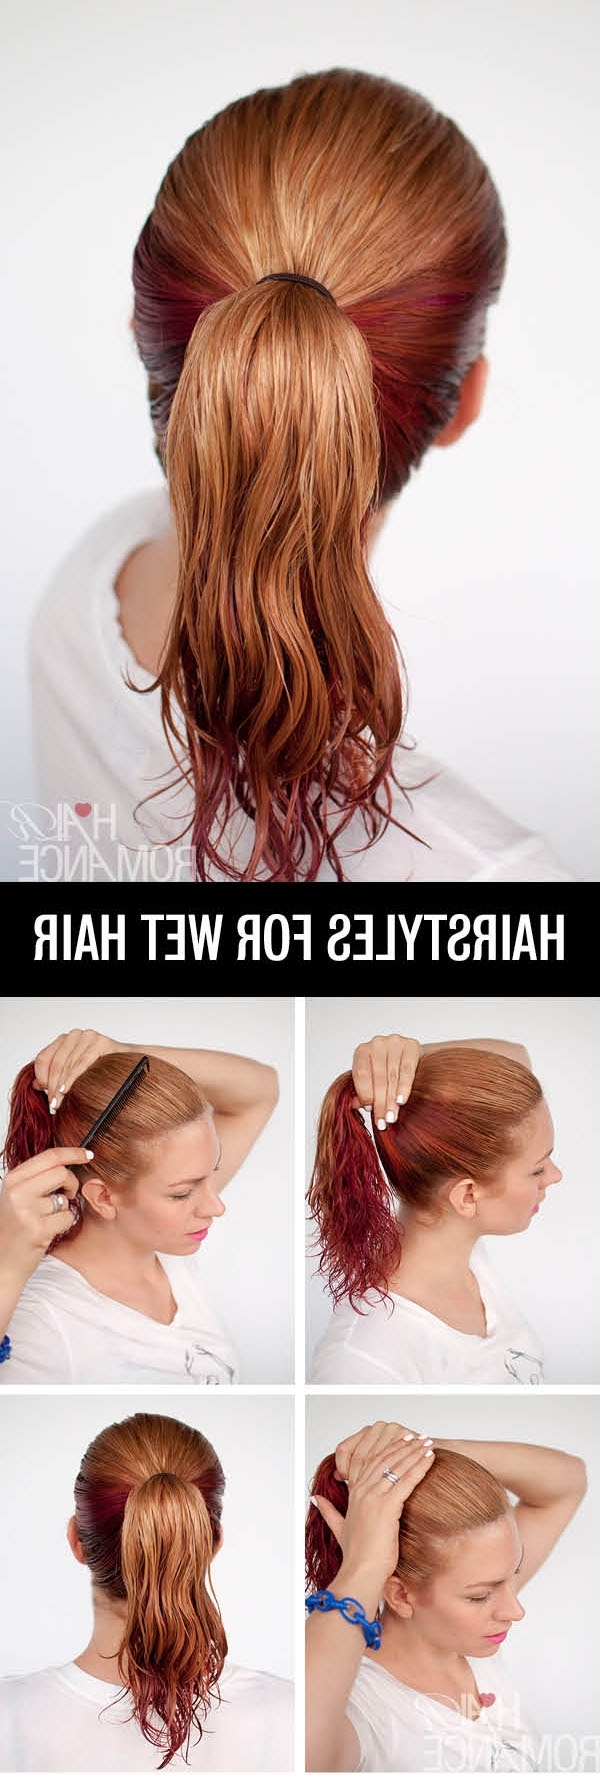 Well Known Easy High Pony Hairstyles For Curly Hair Pertaining To Get Ready Fast With 7 Easy Hairstyle Tutorials For Wet Hair – Hair (View 20 of 20)